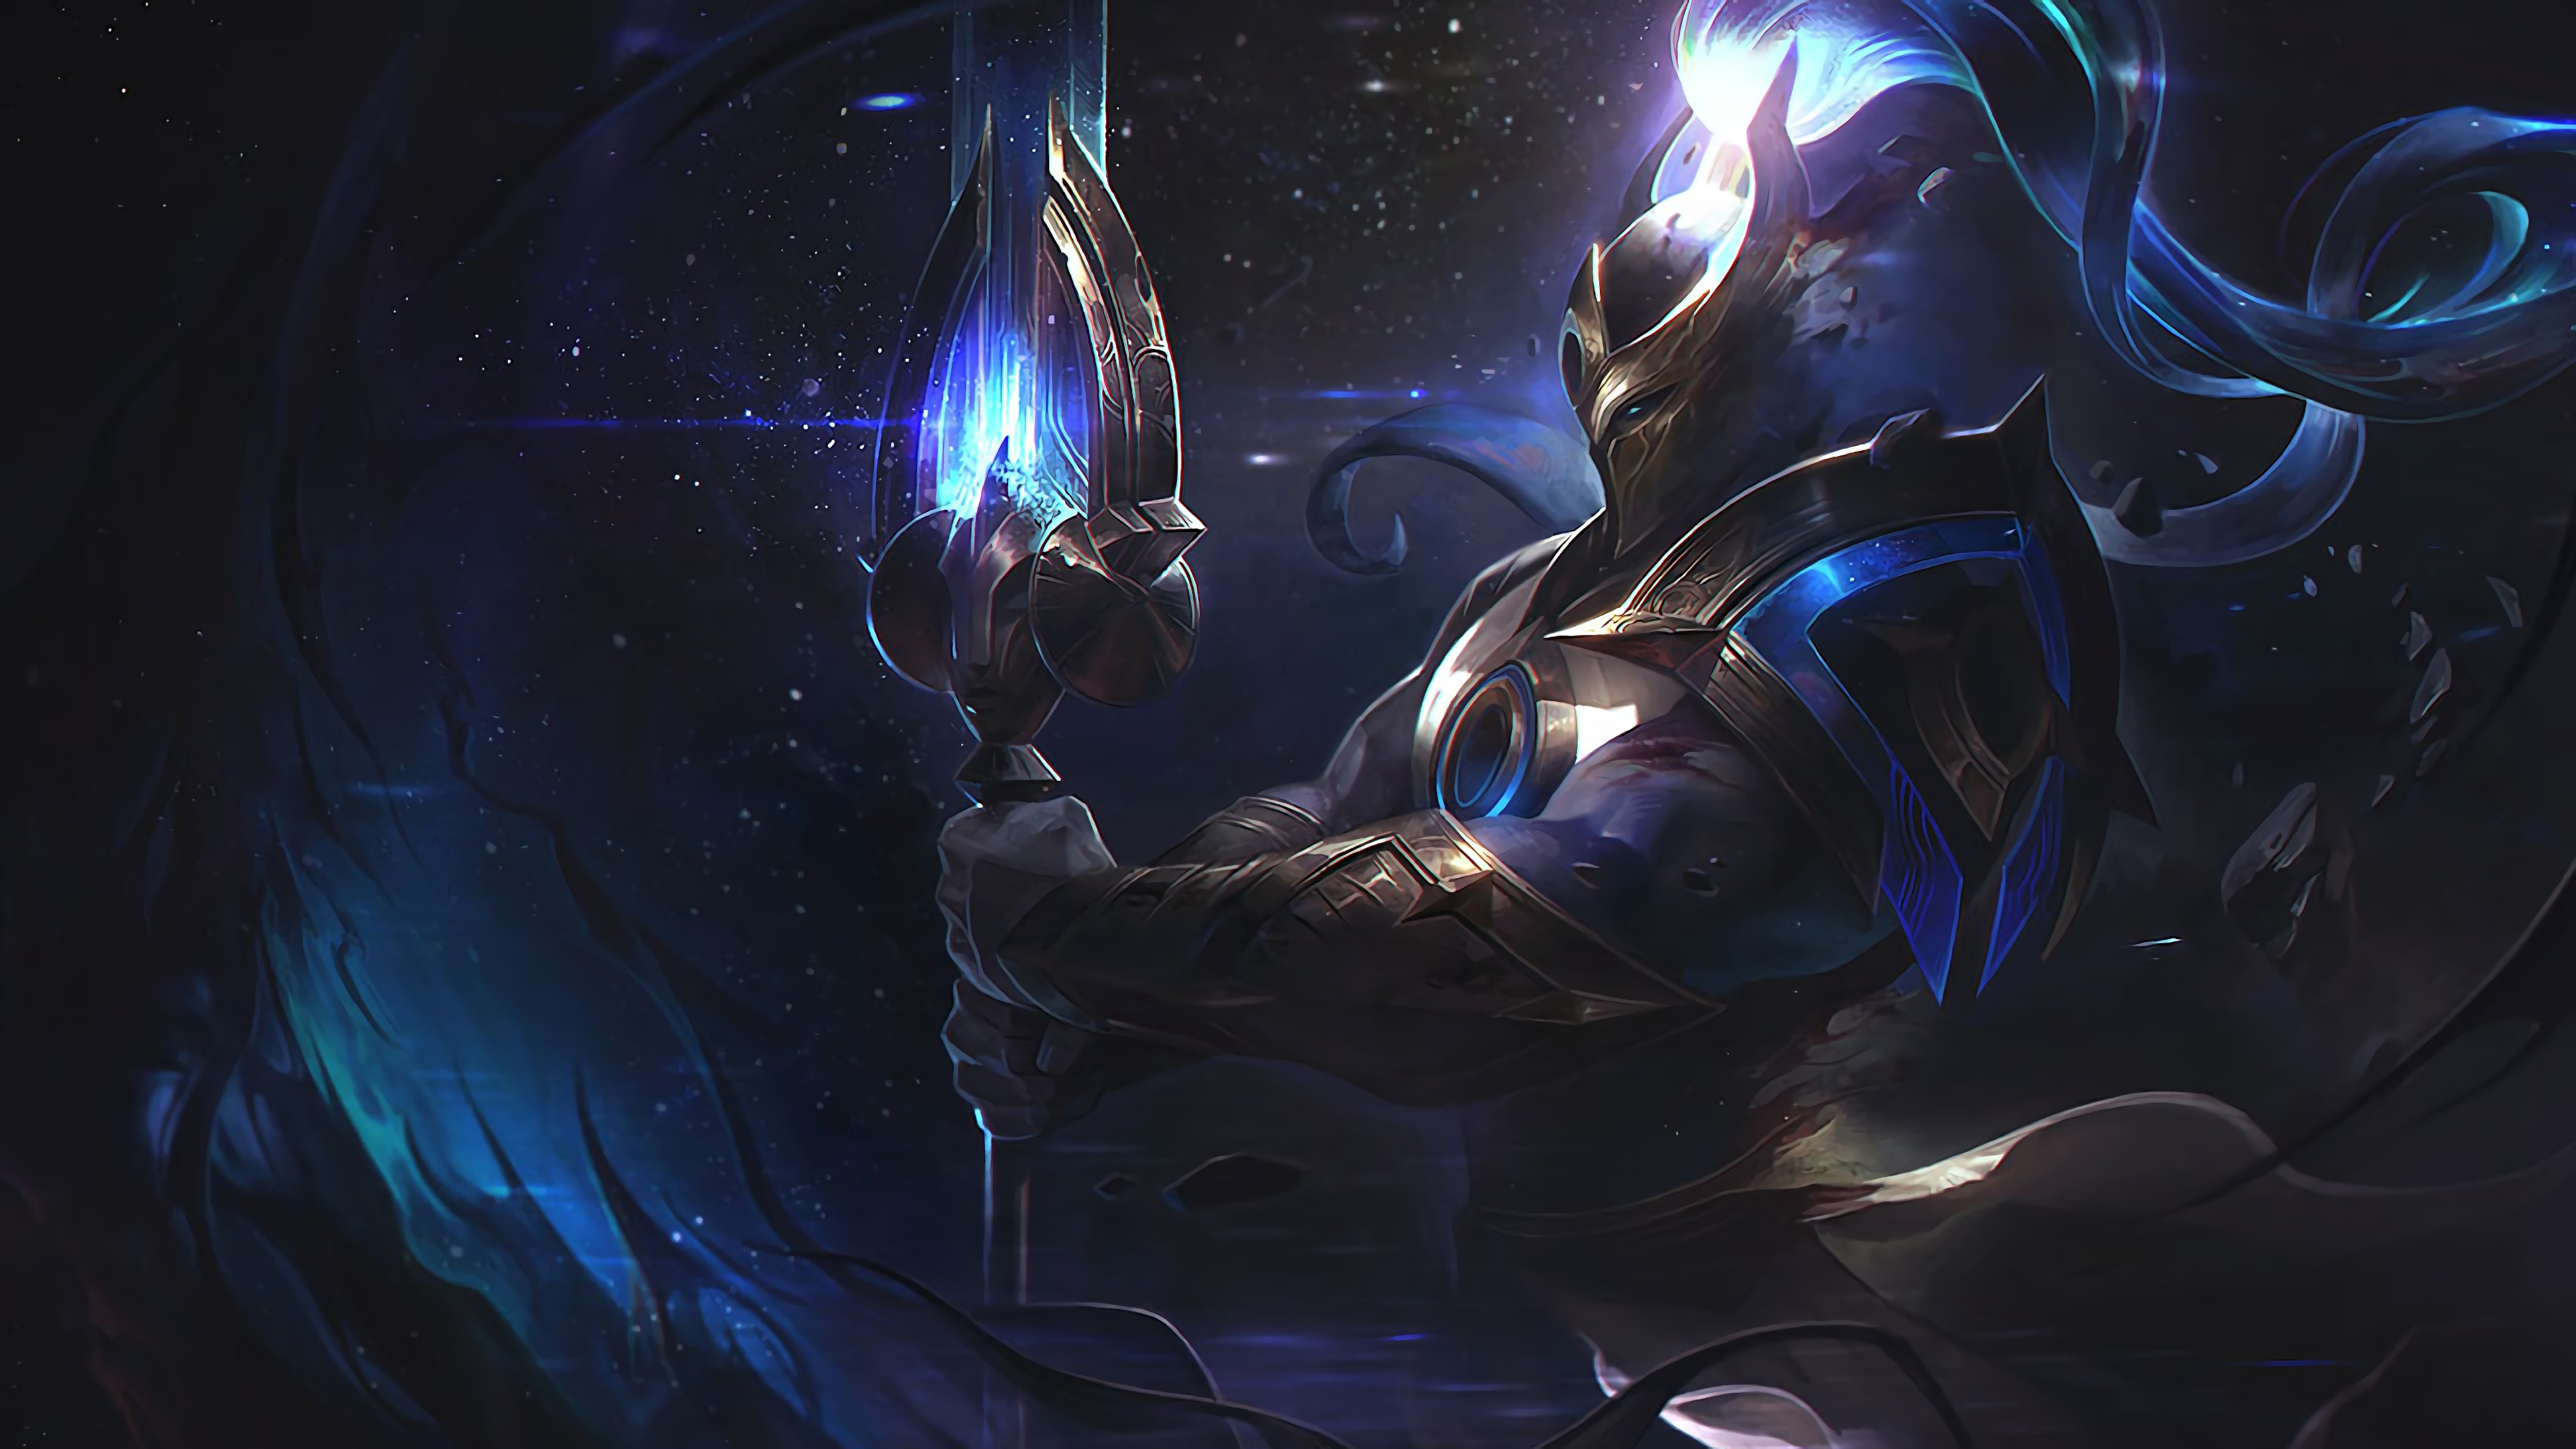 Wallpaper 4k Cosmic Defender Xin Zhao Lol Splash Art League Of Legends Lol Cosmic League Of Legends League Of Legends Xin Zhao